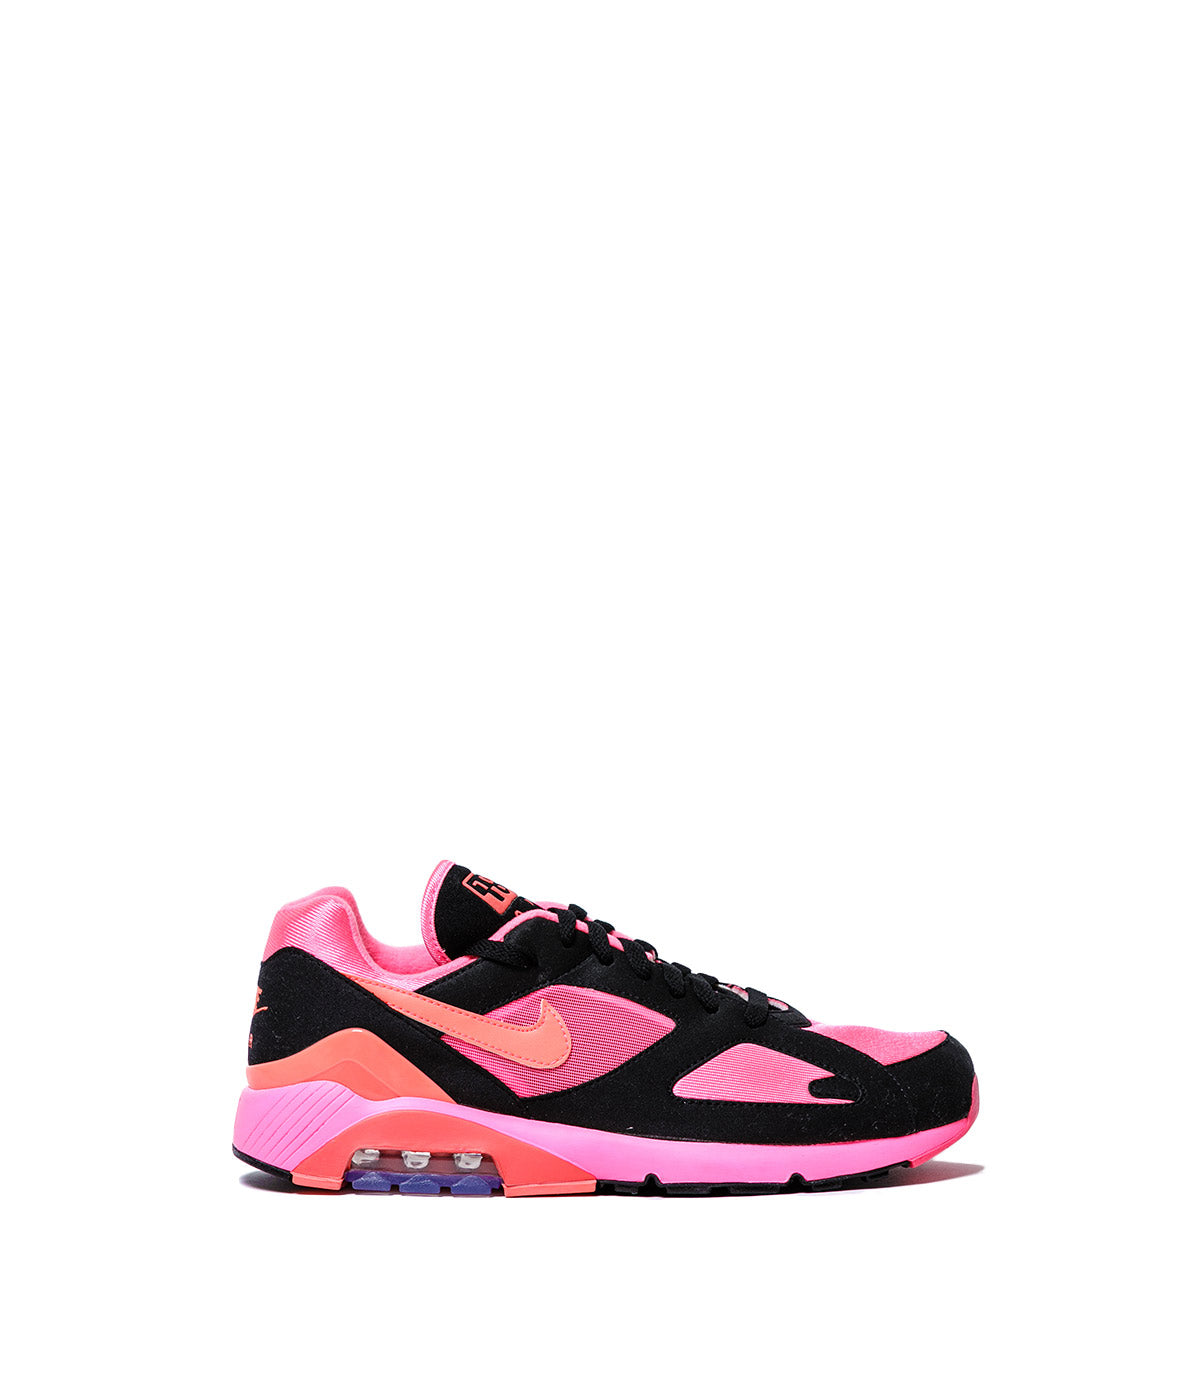 Black & Pink Nike Air Max 180 Sneakers